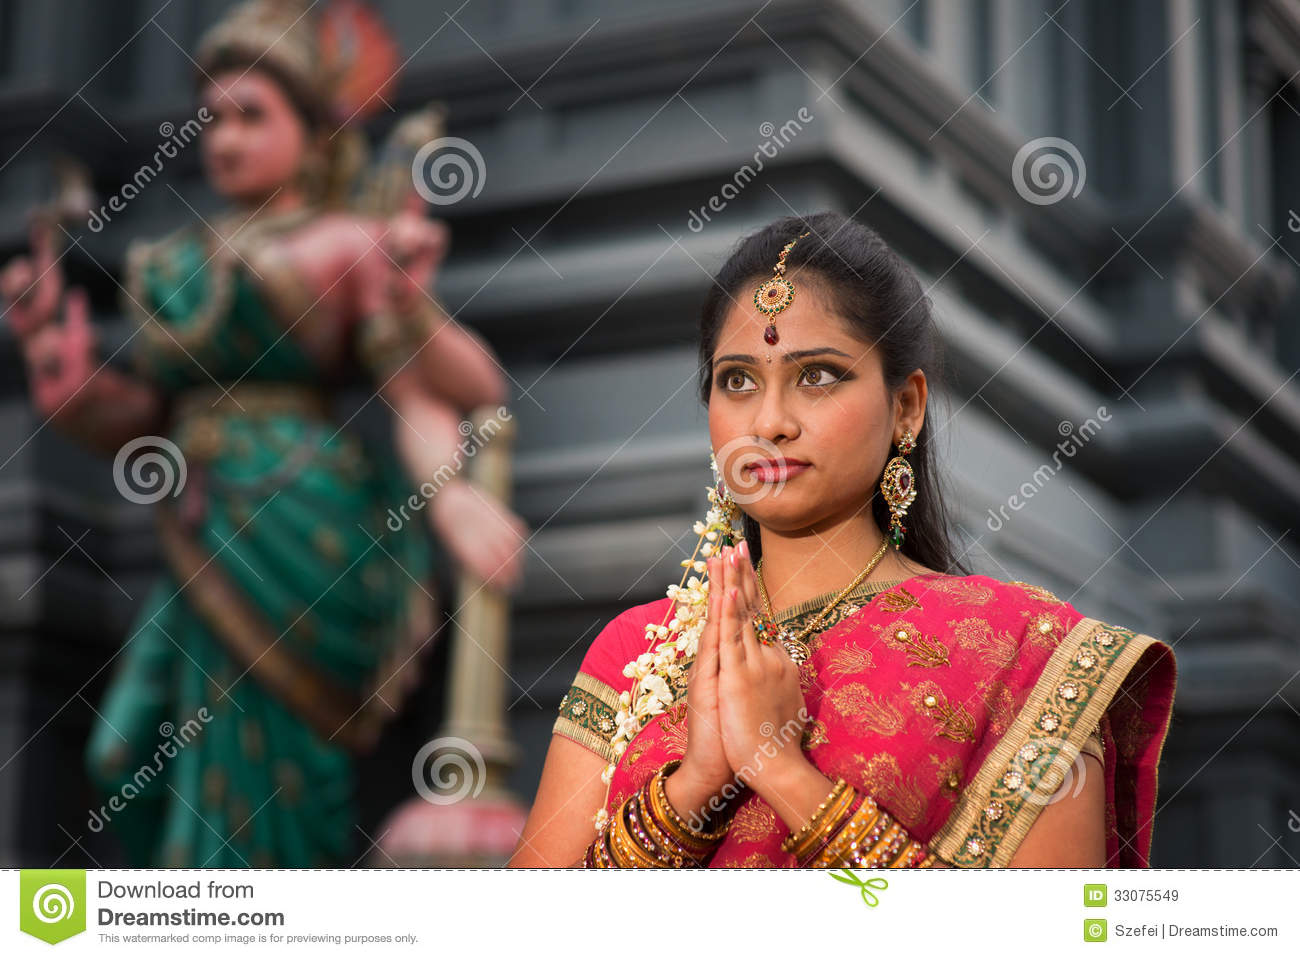 hindu single women in temple Women in hindu culture  mauryan and sikh armies v used their charms to kill invaders and temple breakers v women donated jewelery and money to fund national defense.